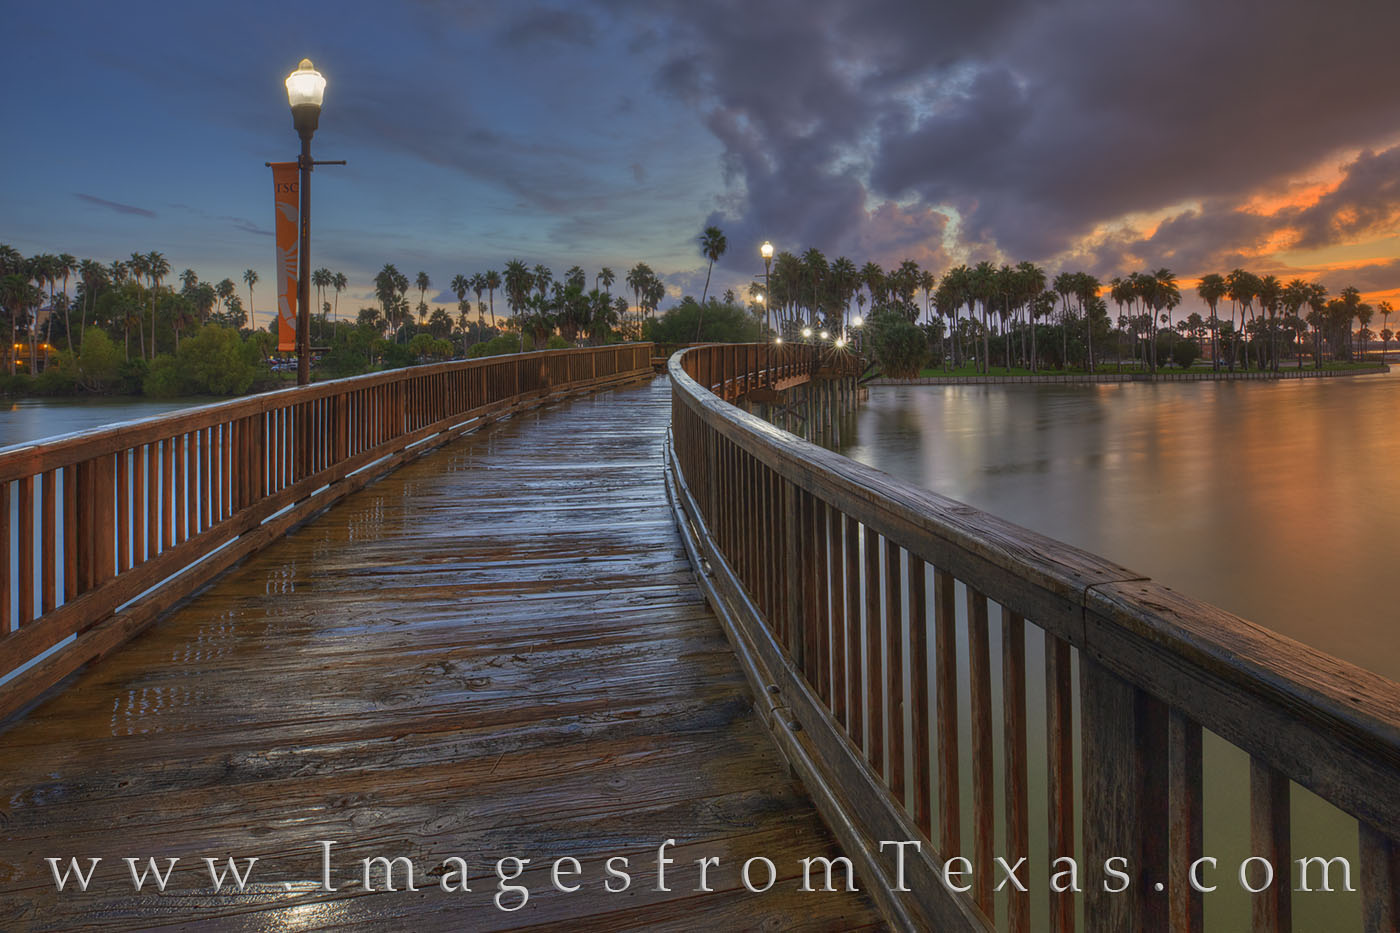 resaca, brownsville, sunset, rain, bridge, southmost college, border town, evening, waterway, south texas, coast, humid, photo